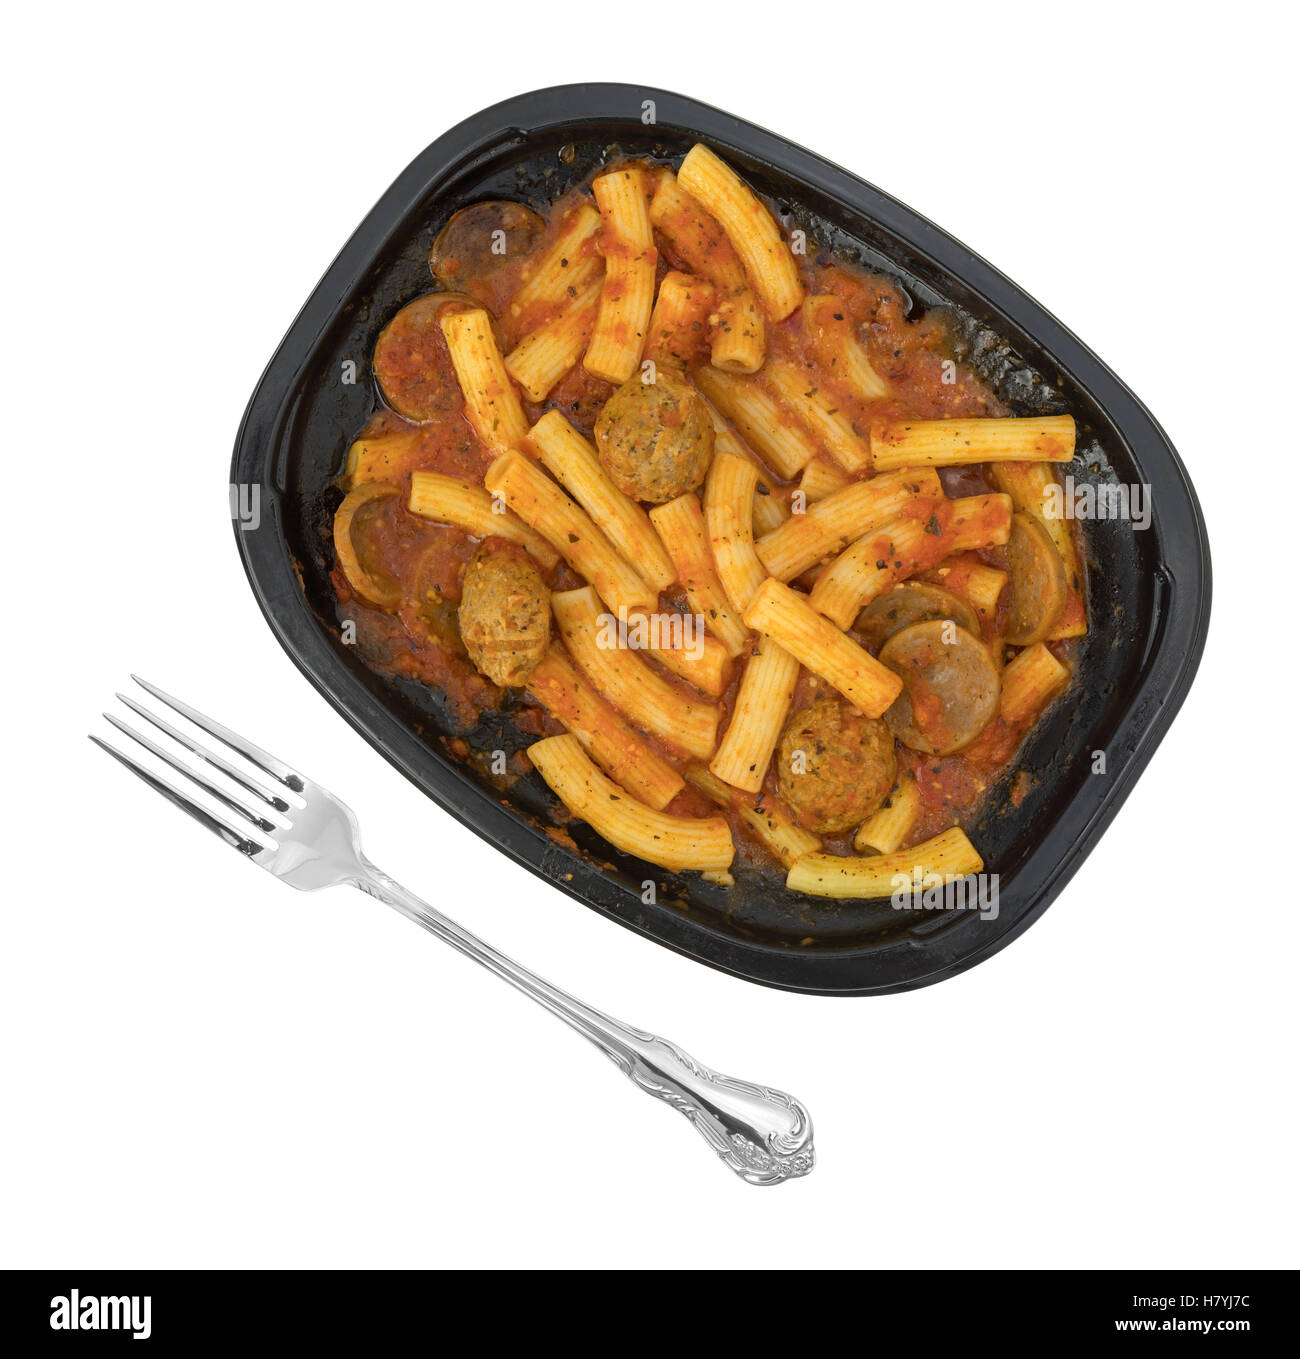 A TV dinner of rigatoni pasta with sausage and meatballs in a marinara sauce in a black tray with a fork to the - Stock Image